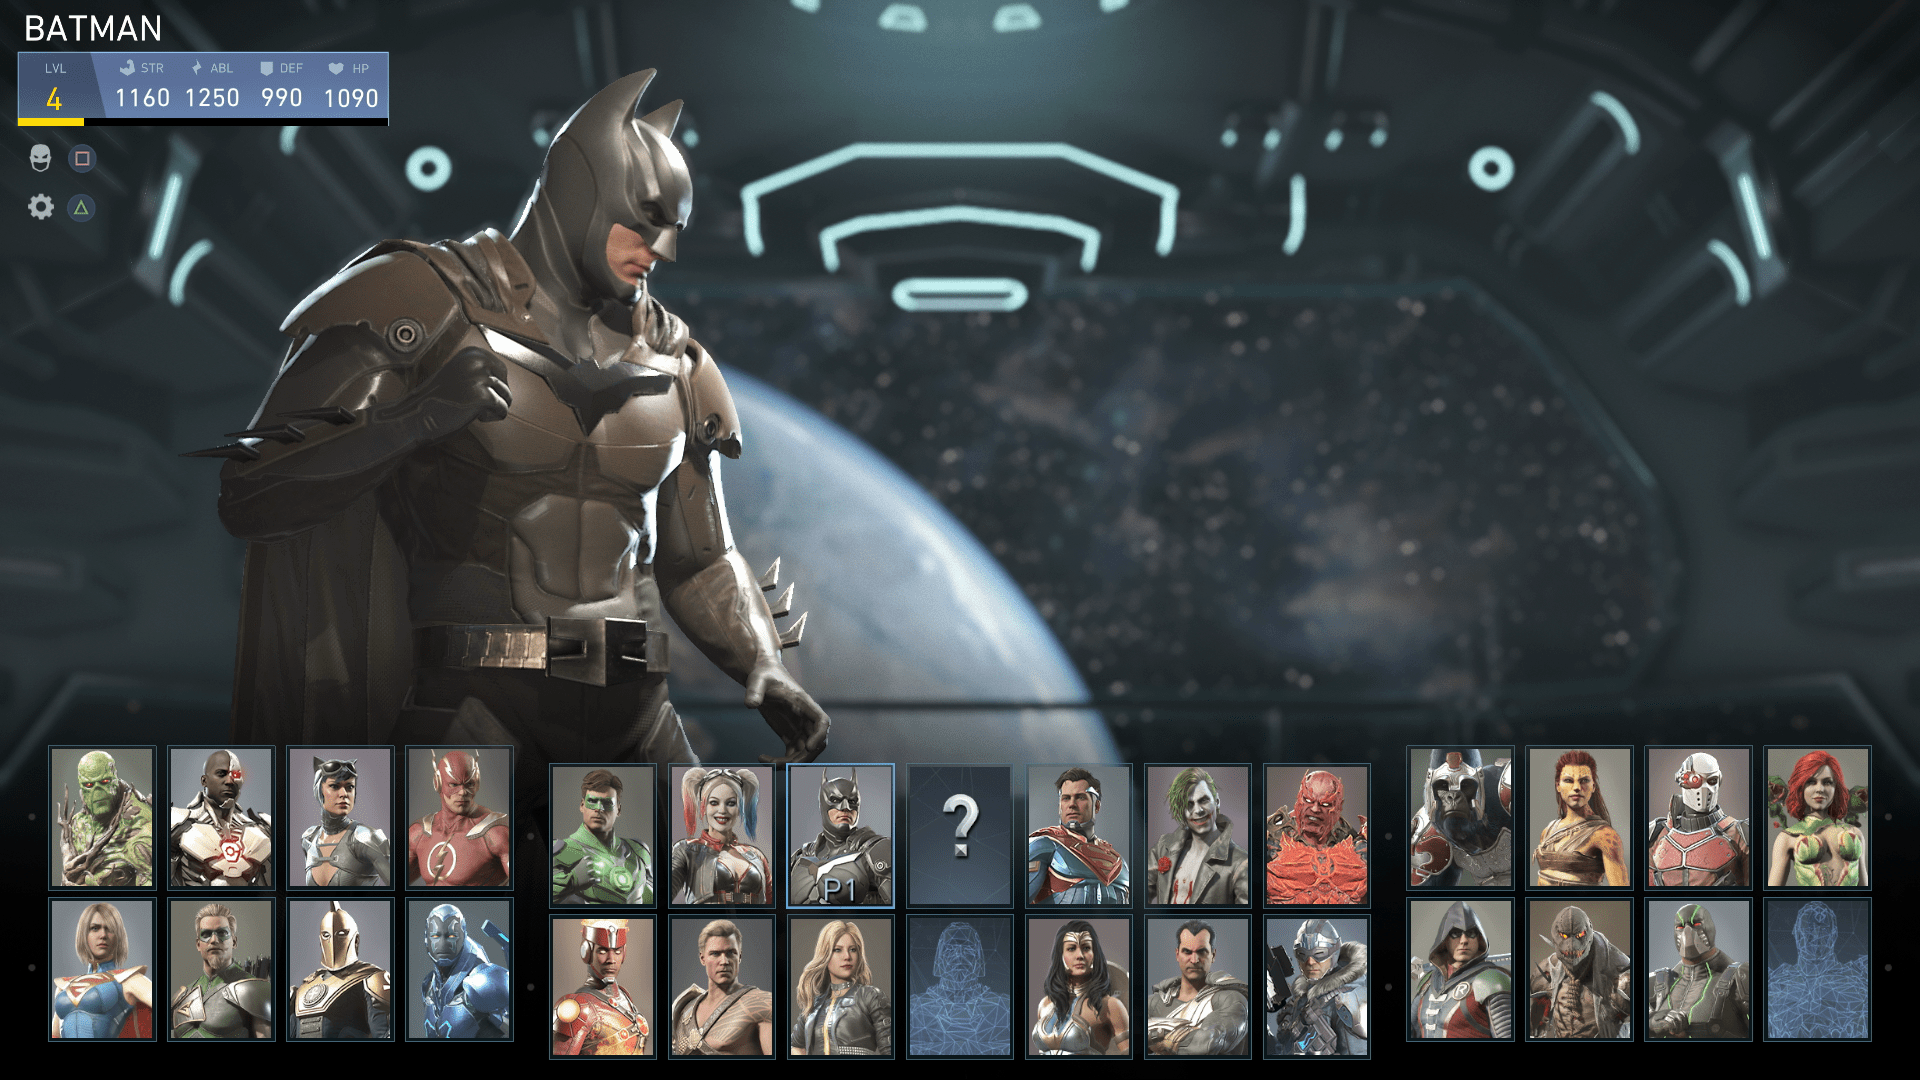 Image result for Injustice 2 character screen